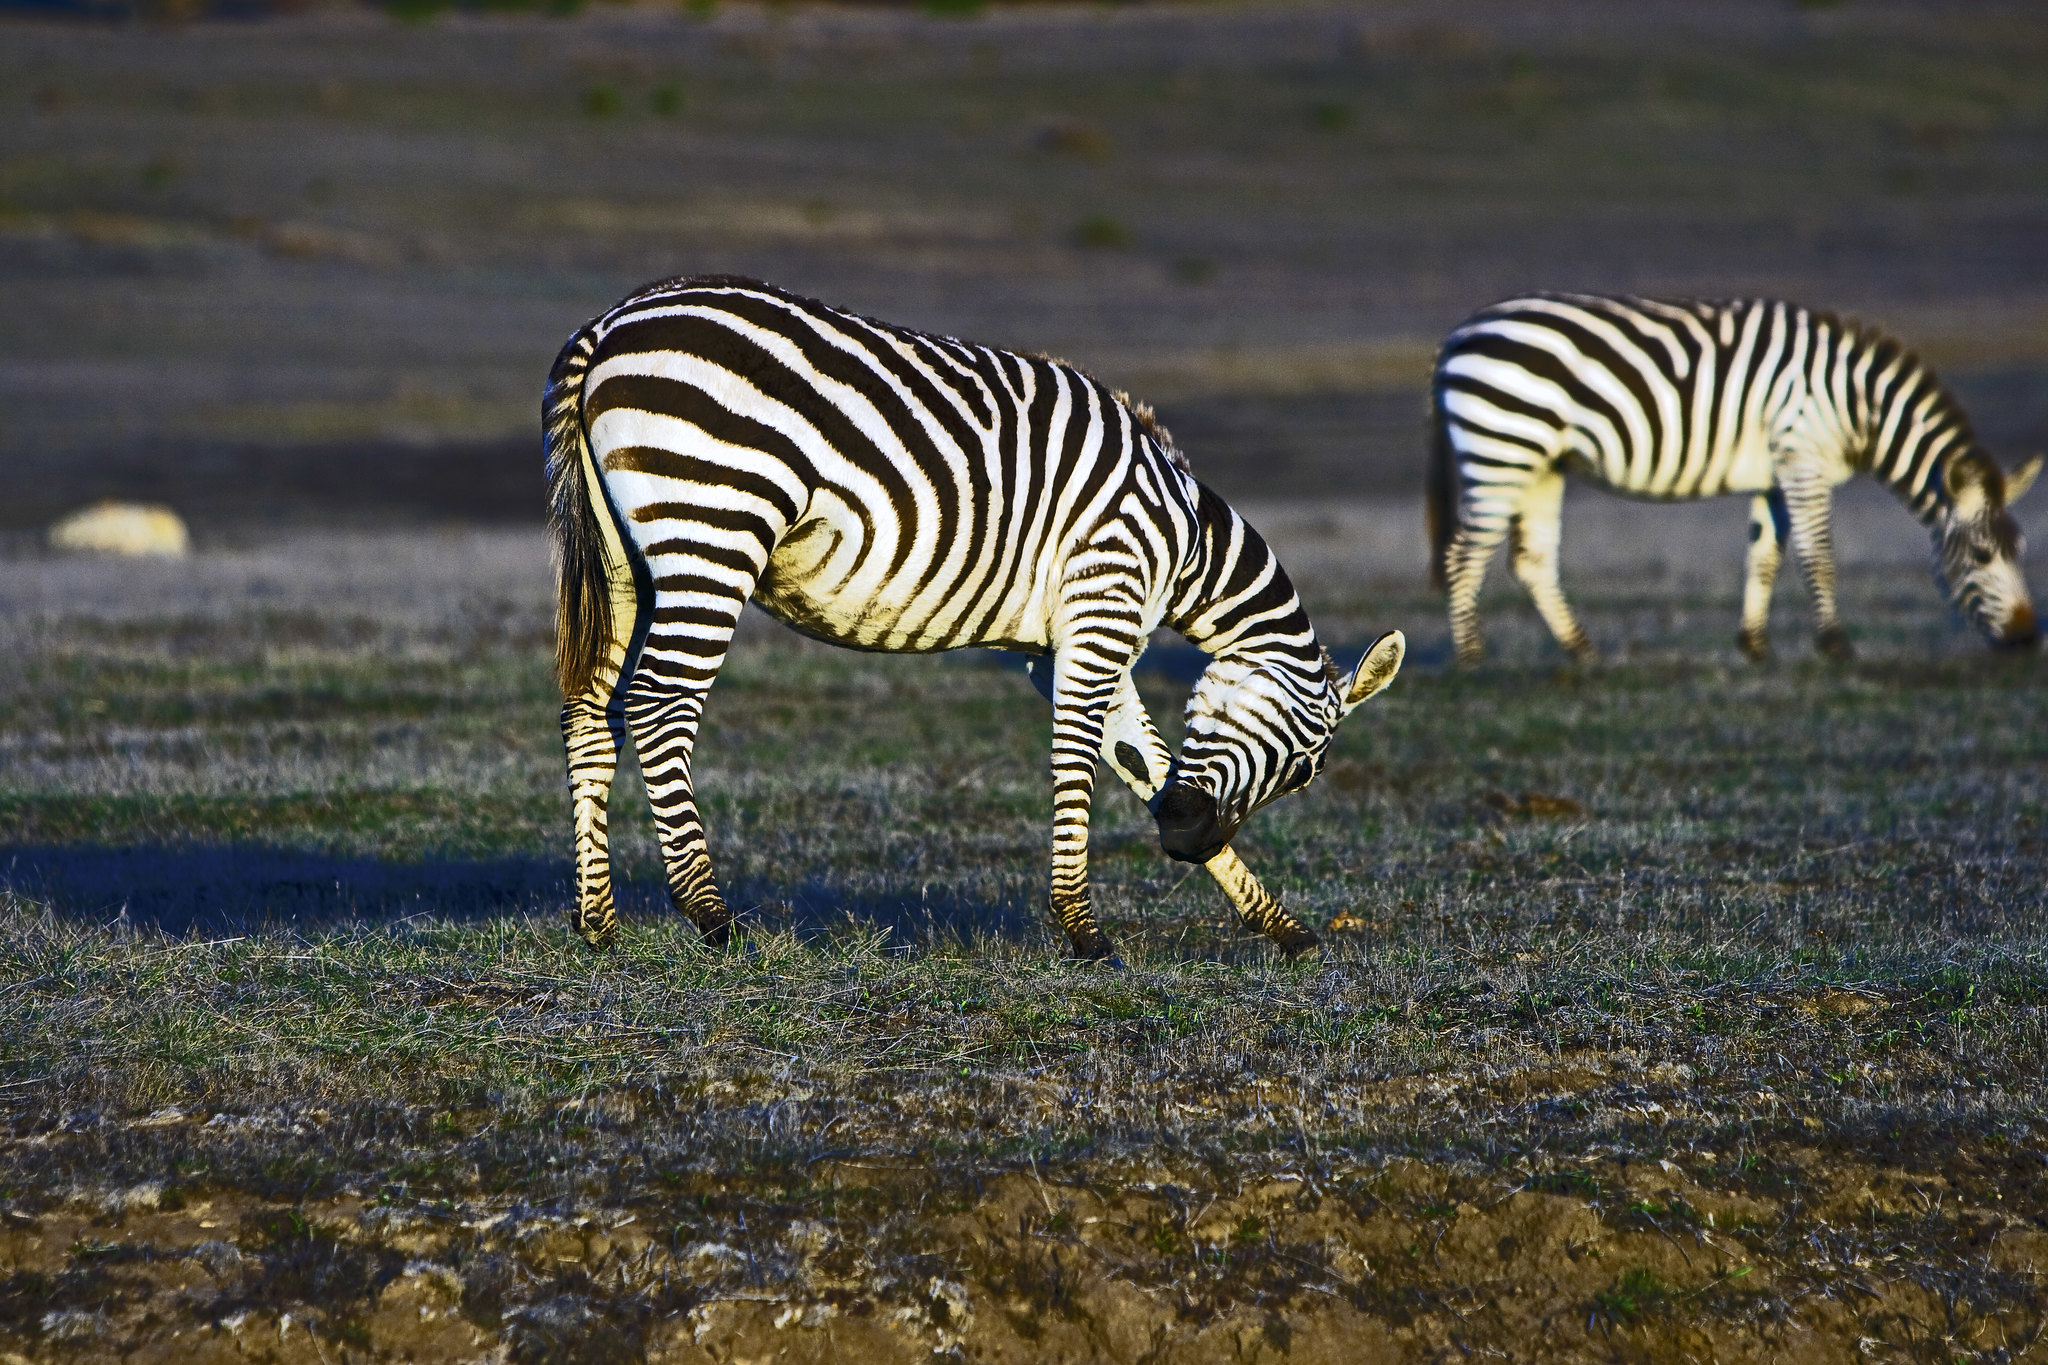 Zebras roaming near San Simeon, CA